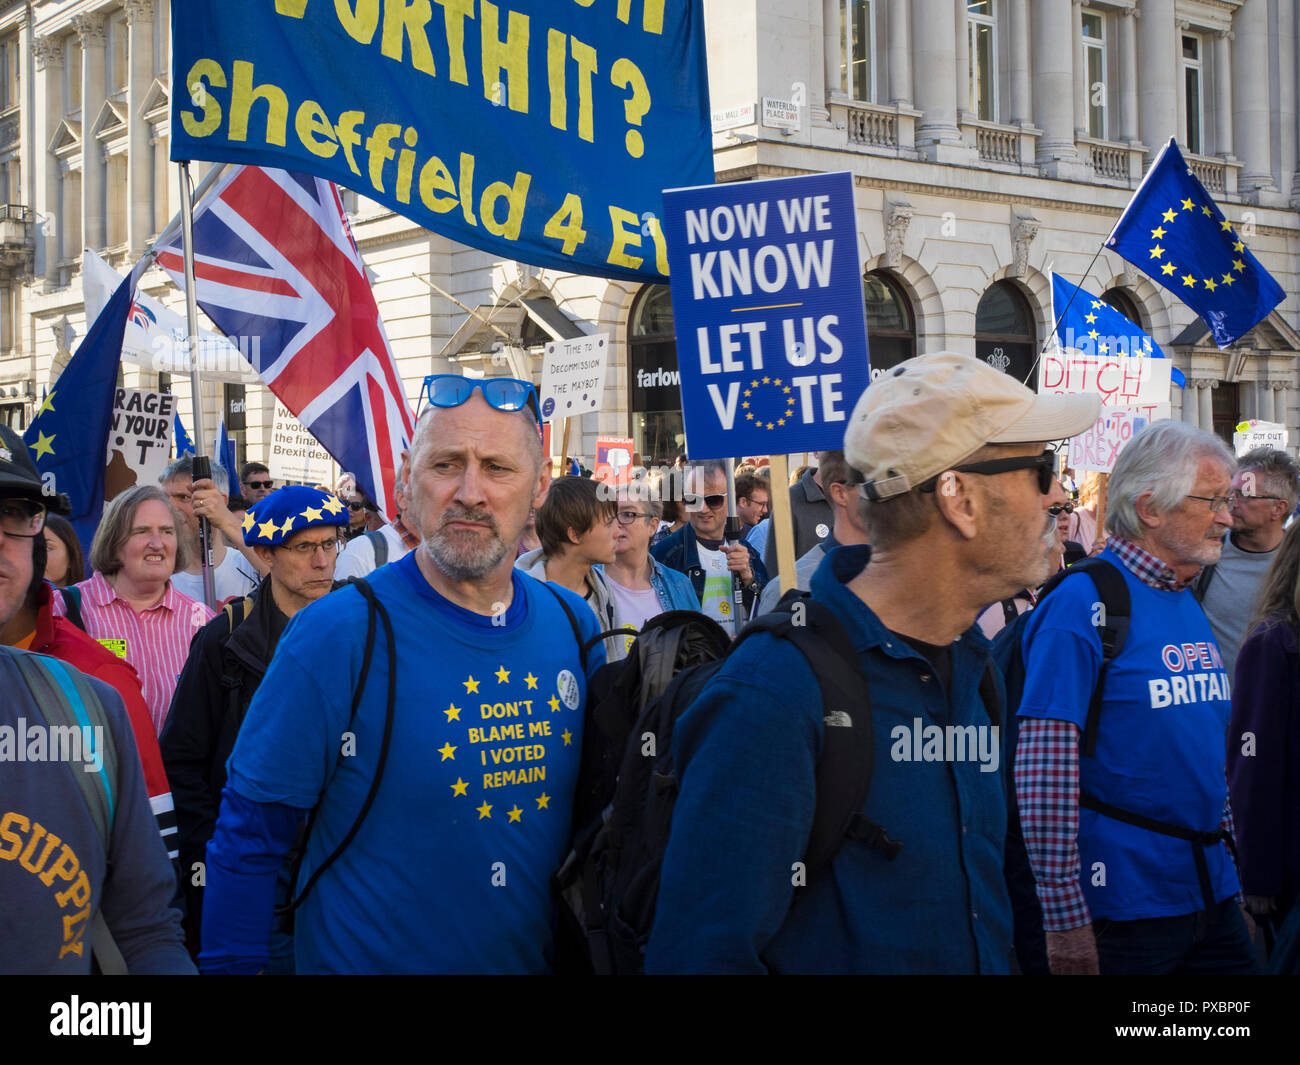 Anti Brexit Campaigners march through London - Stock Image